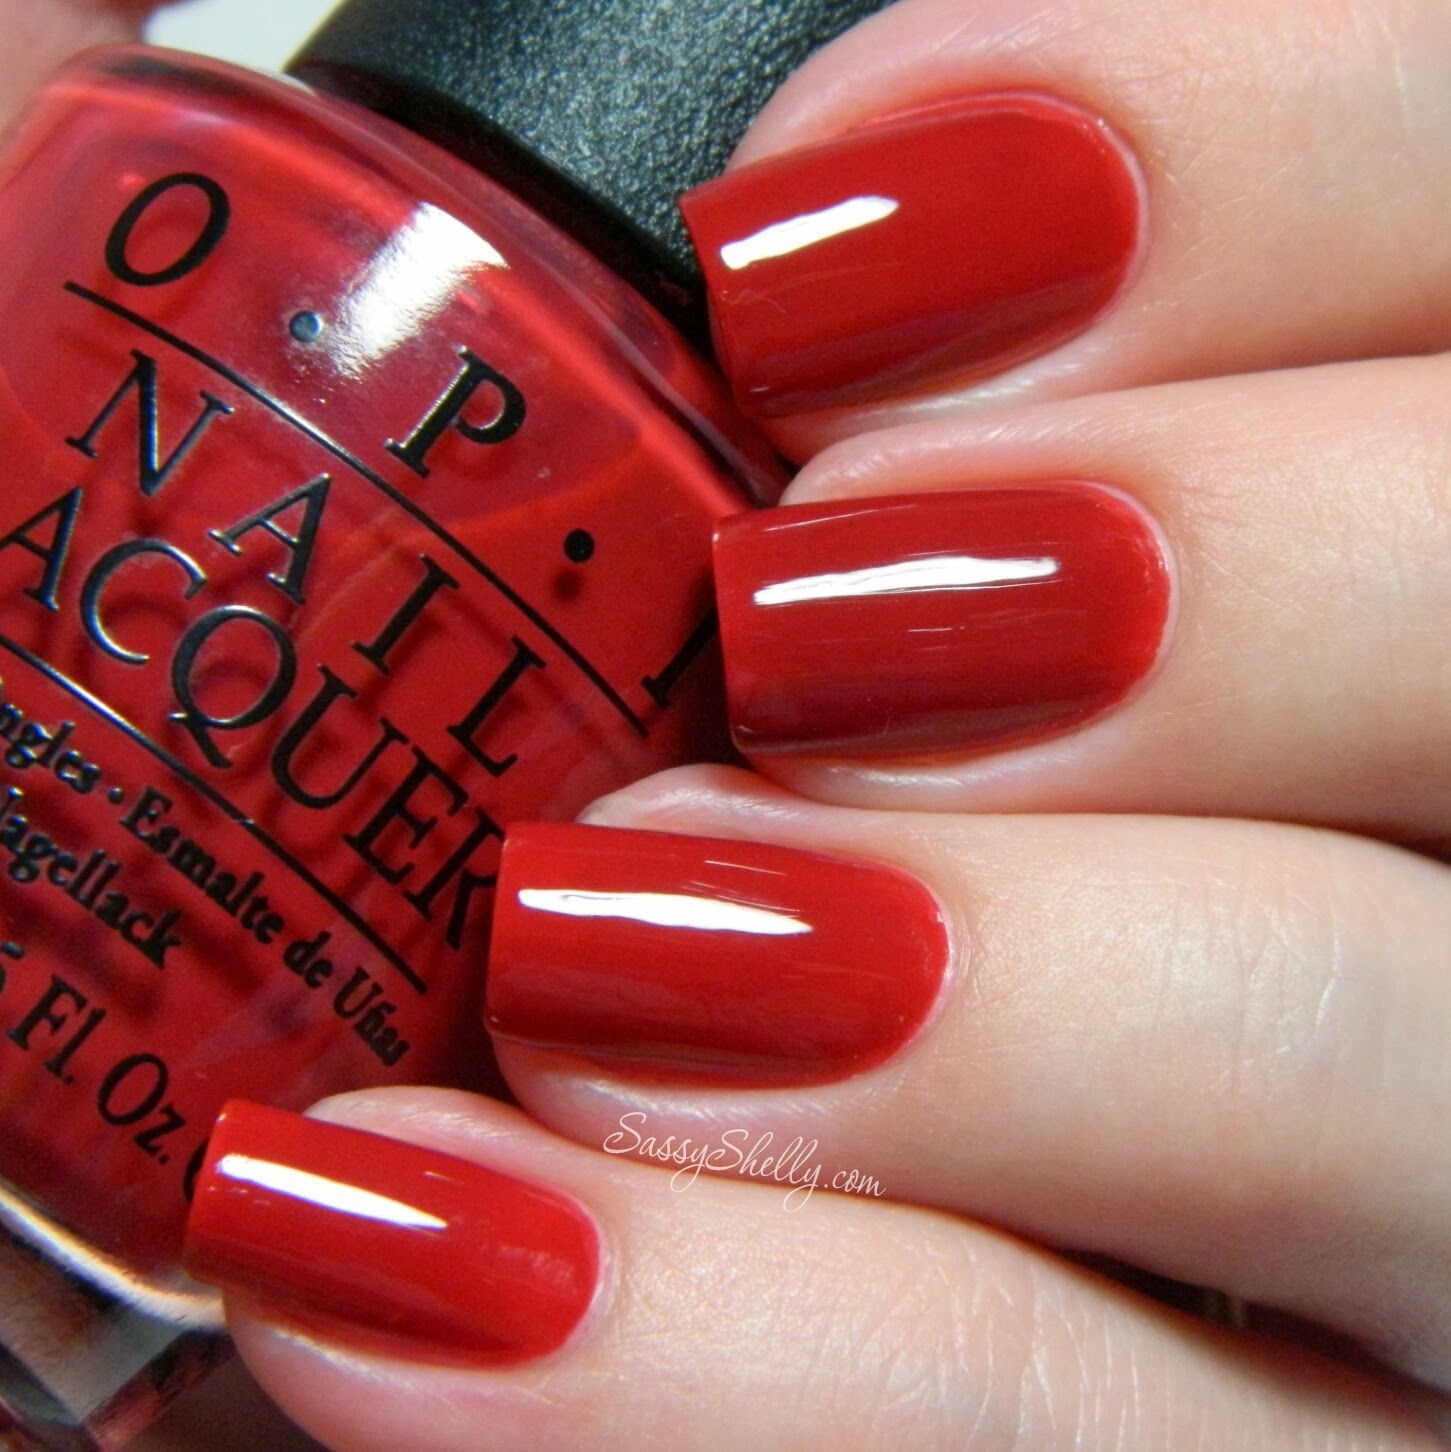 Opi San Francisco Collection Swatches Amp Review Part 1